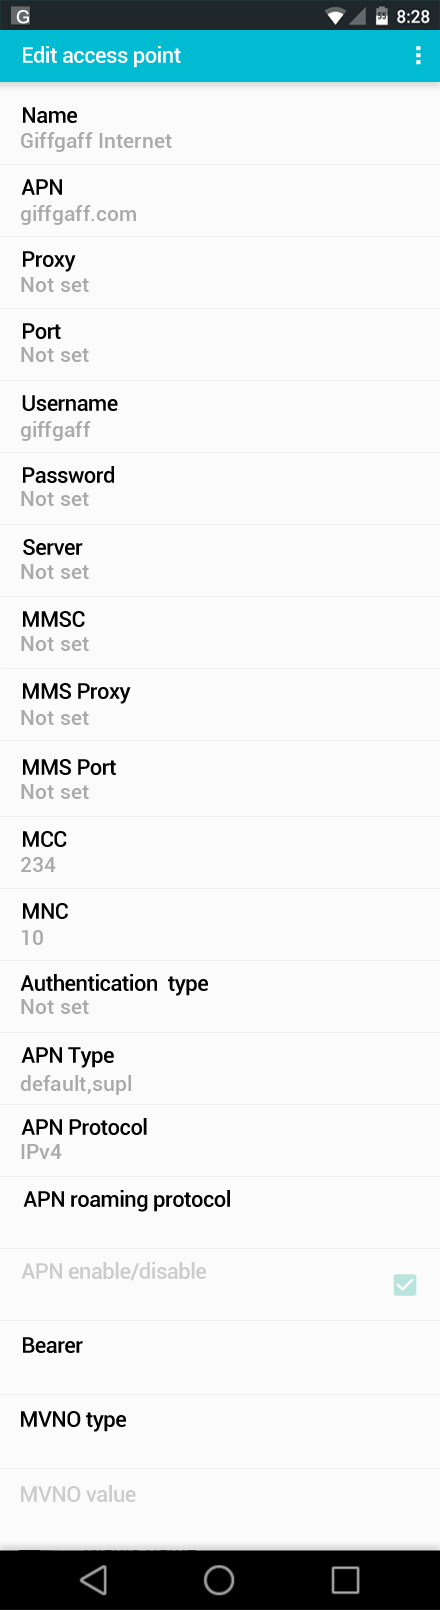 Giffgaff Internet APN settings for Android screenshot